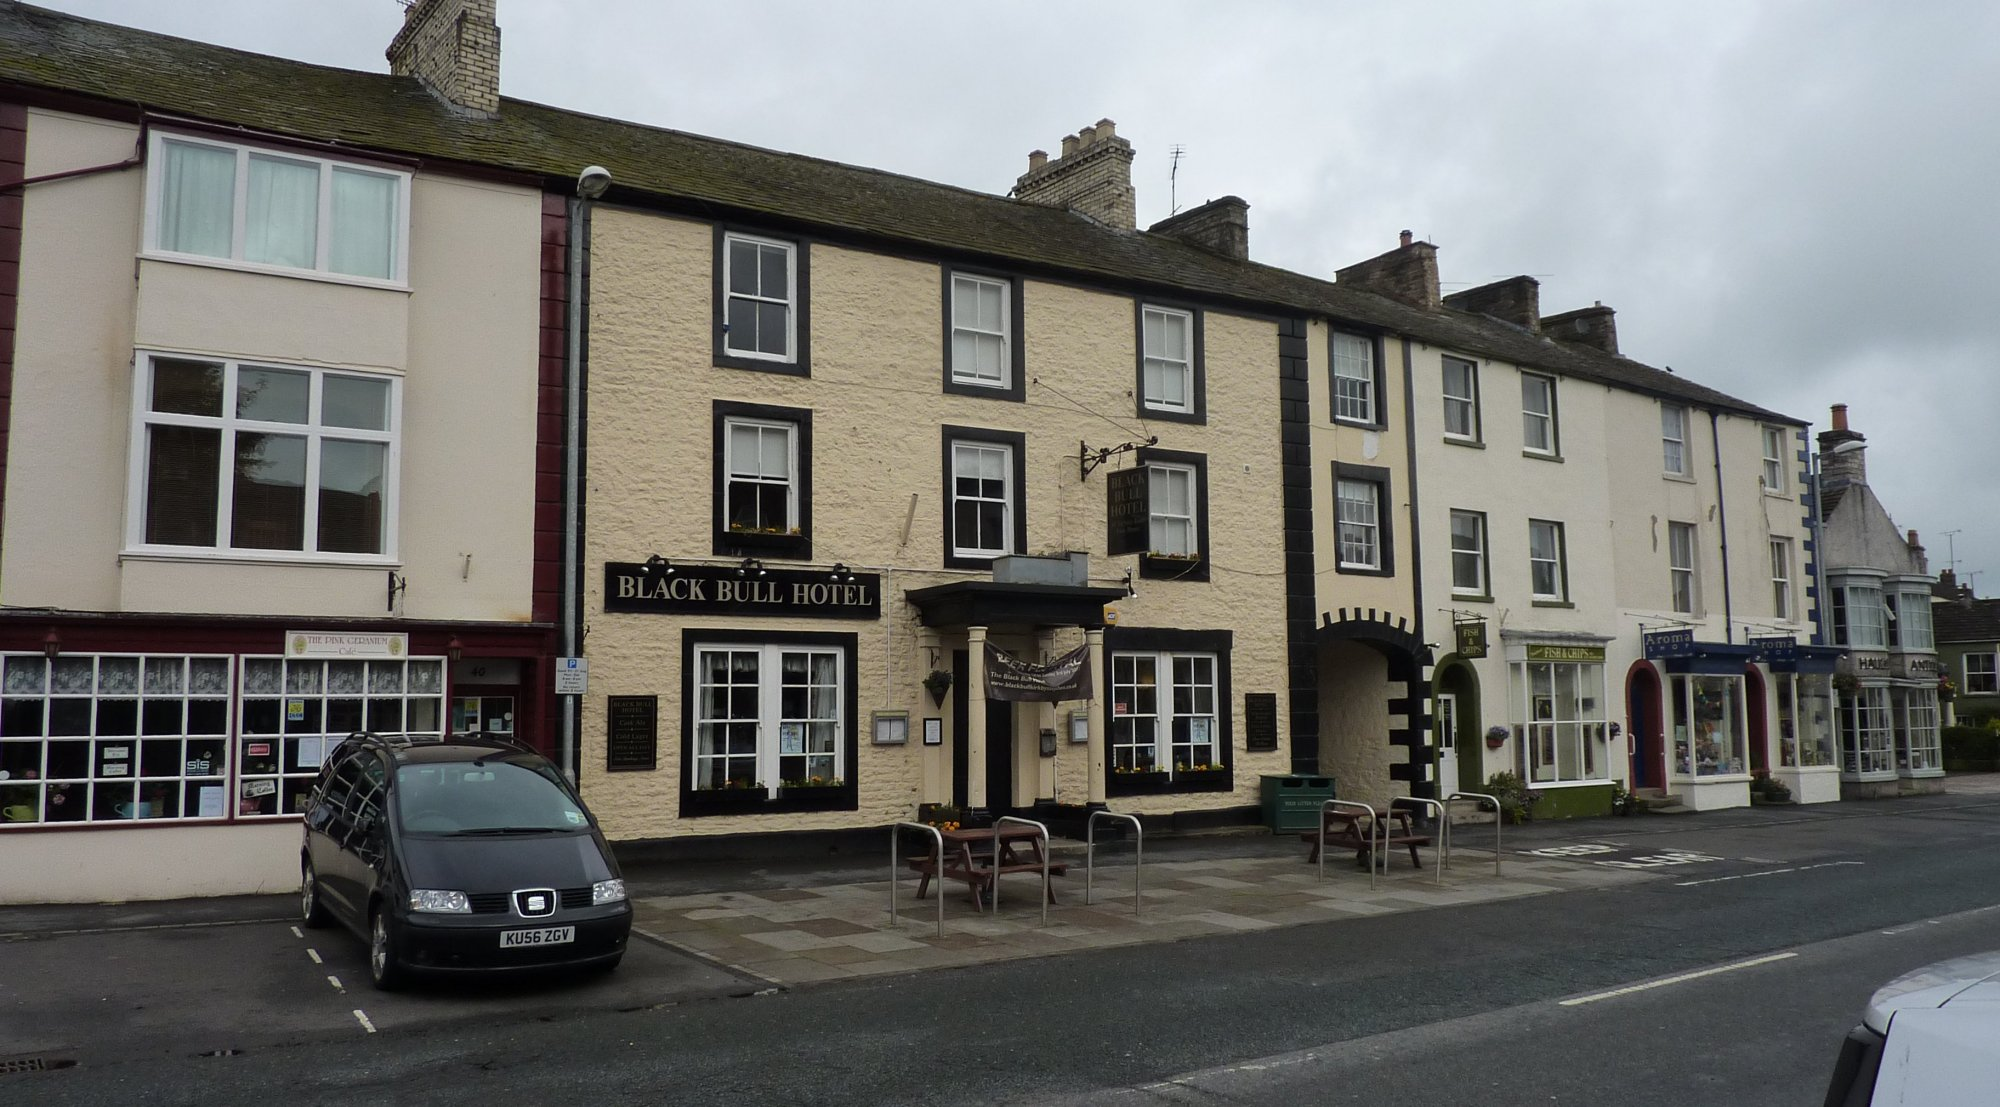 Black Bull Hotel in Kirkby Stephen